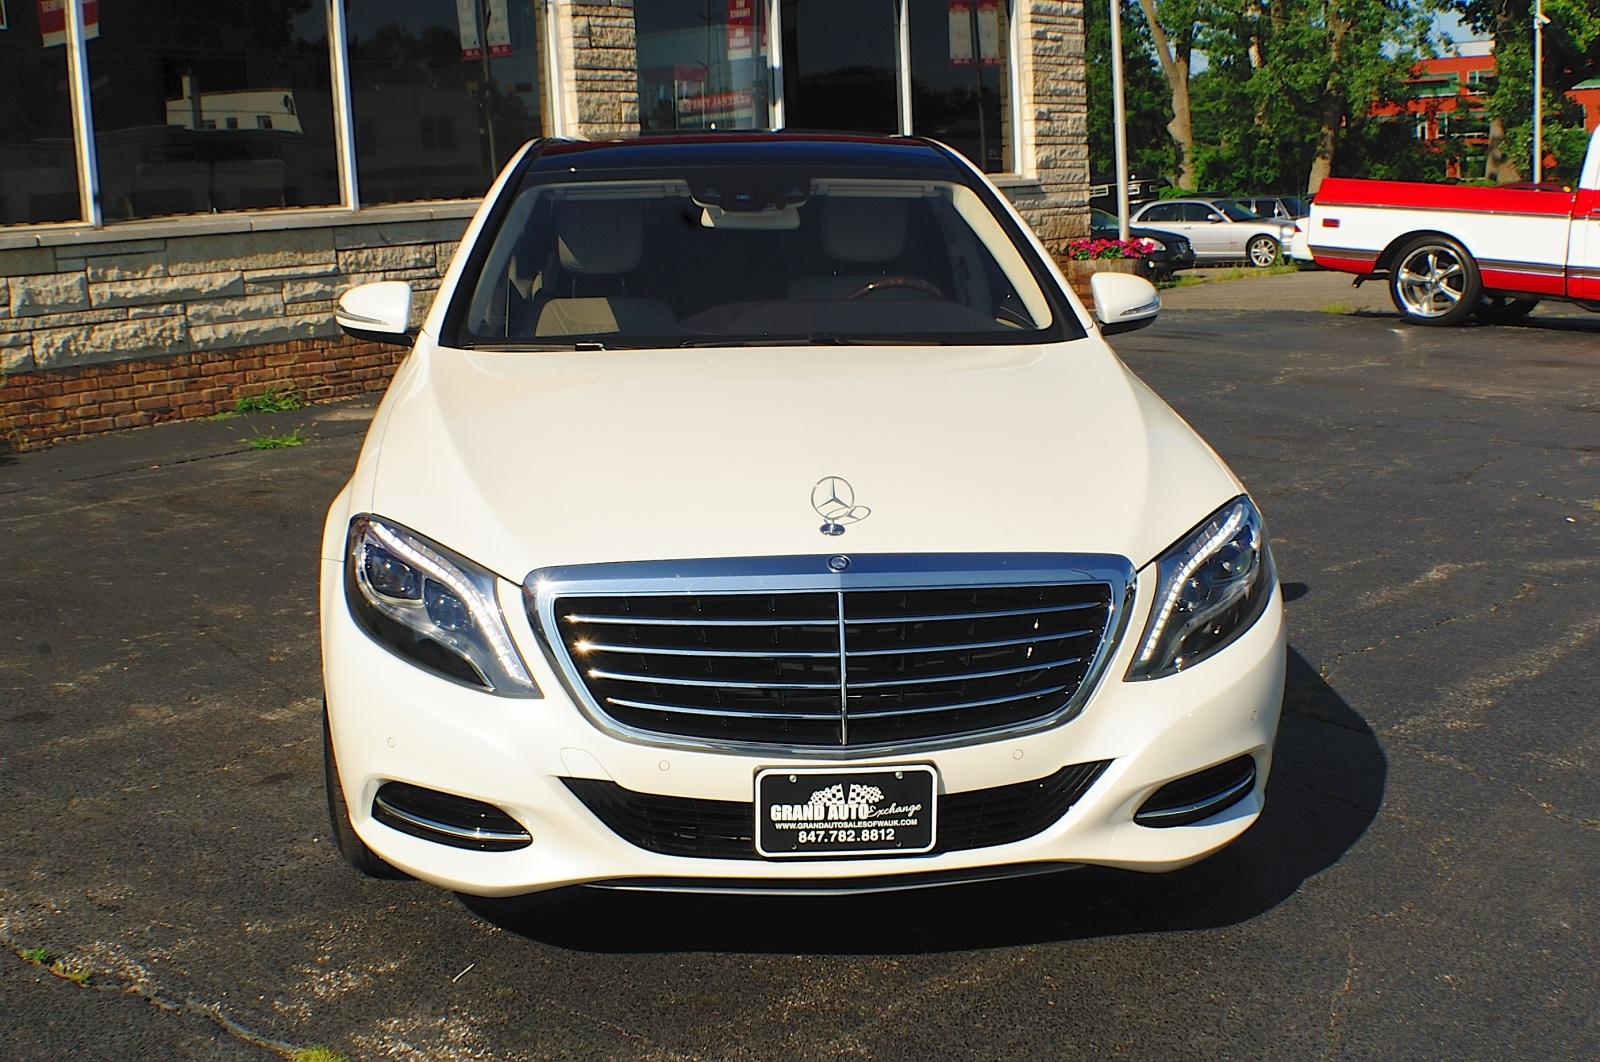 2014 Mercedes Benz S550 4Matic AWD Turbo White Sedan used car Sale Gurnee Kenosha Mchenry Chicago Illinois